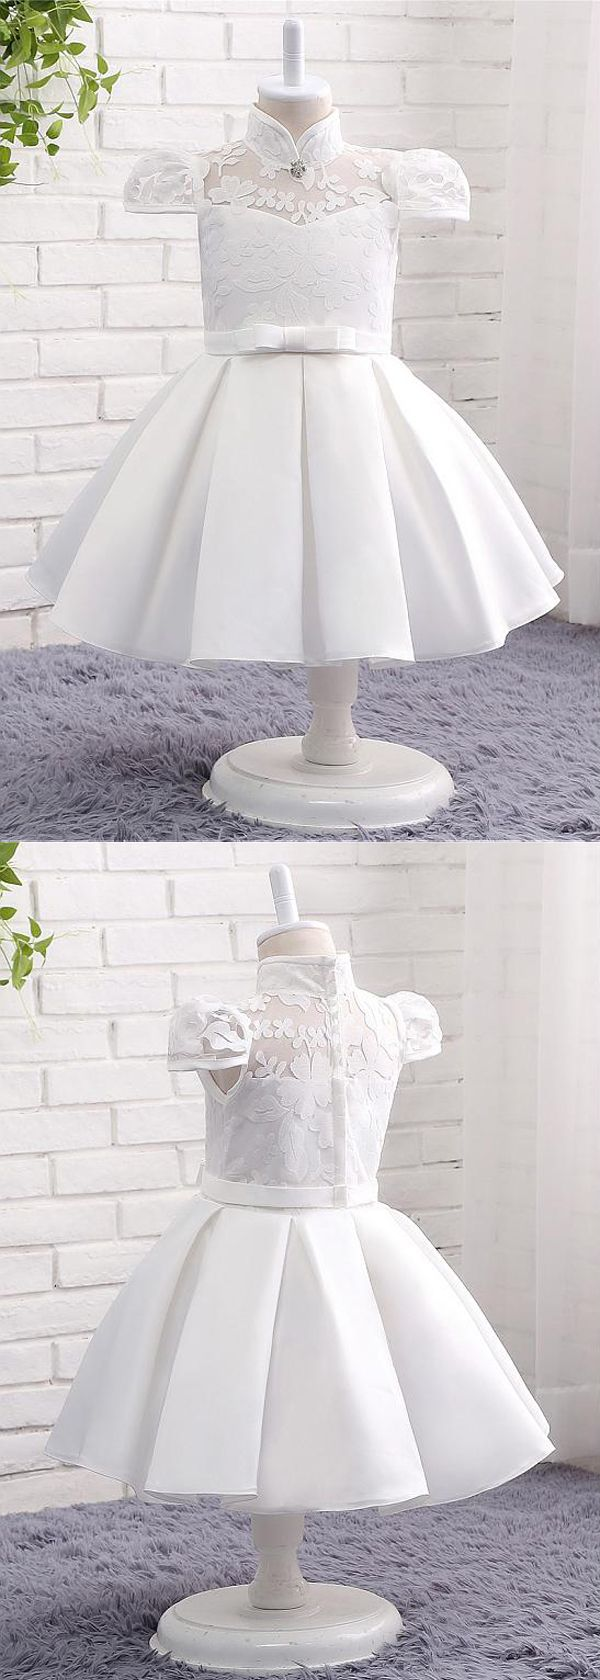 In Stock Modest Lace & Satin High Collar Neckline Ball Gown Flower Girl Dresses With Bowknot